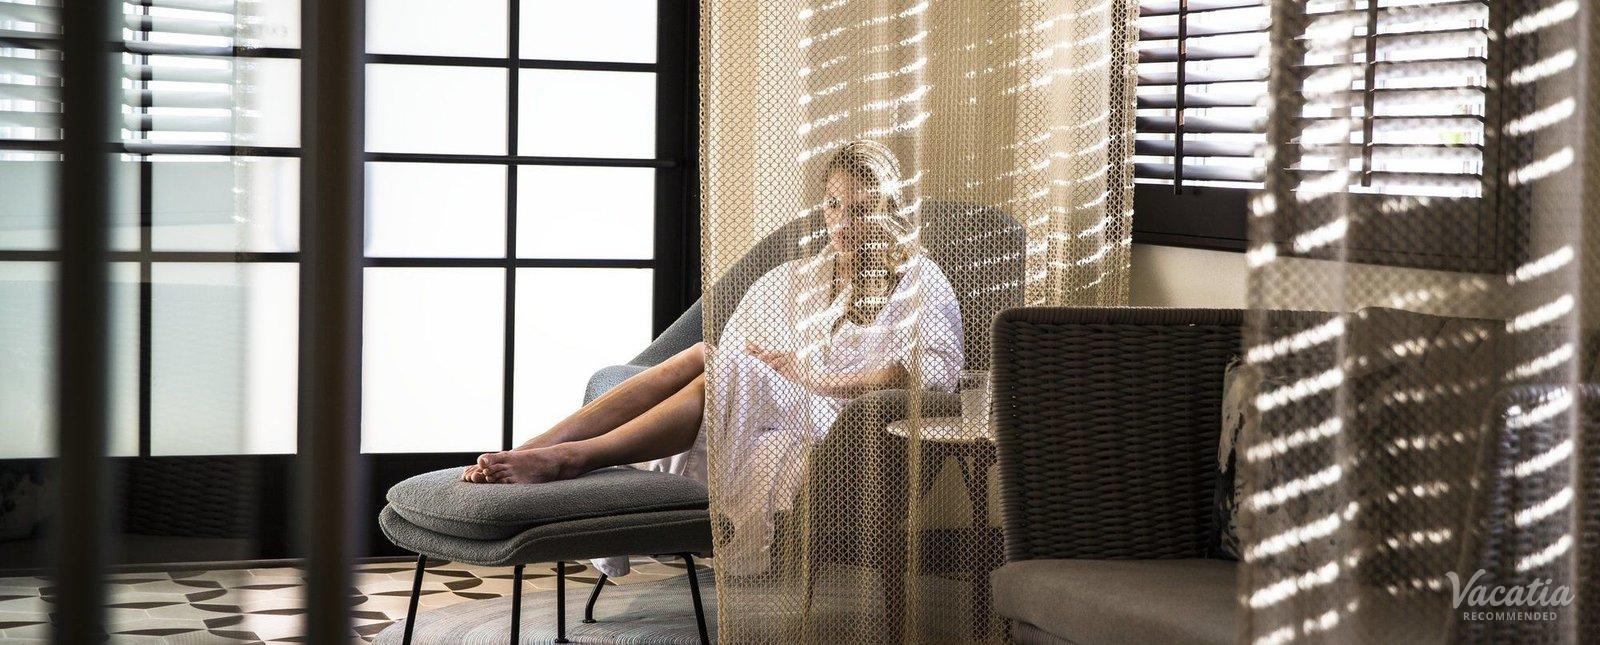 Four Seasons Aviara Spa